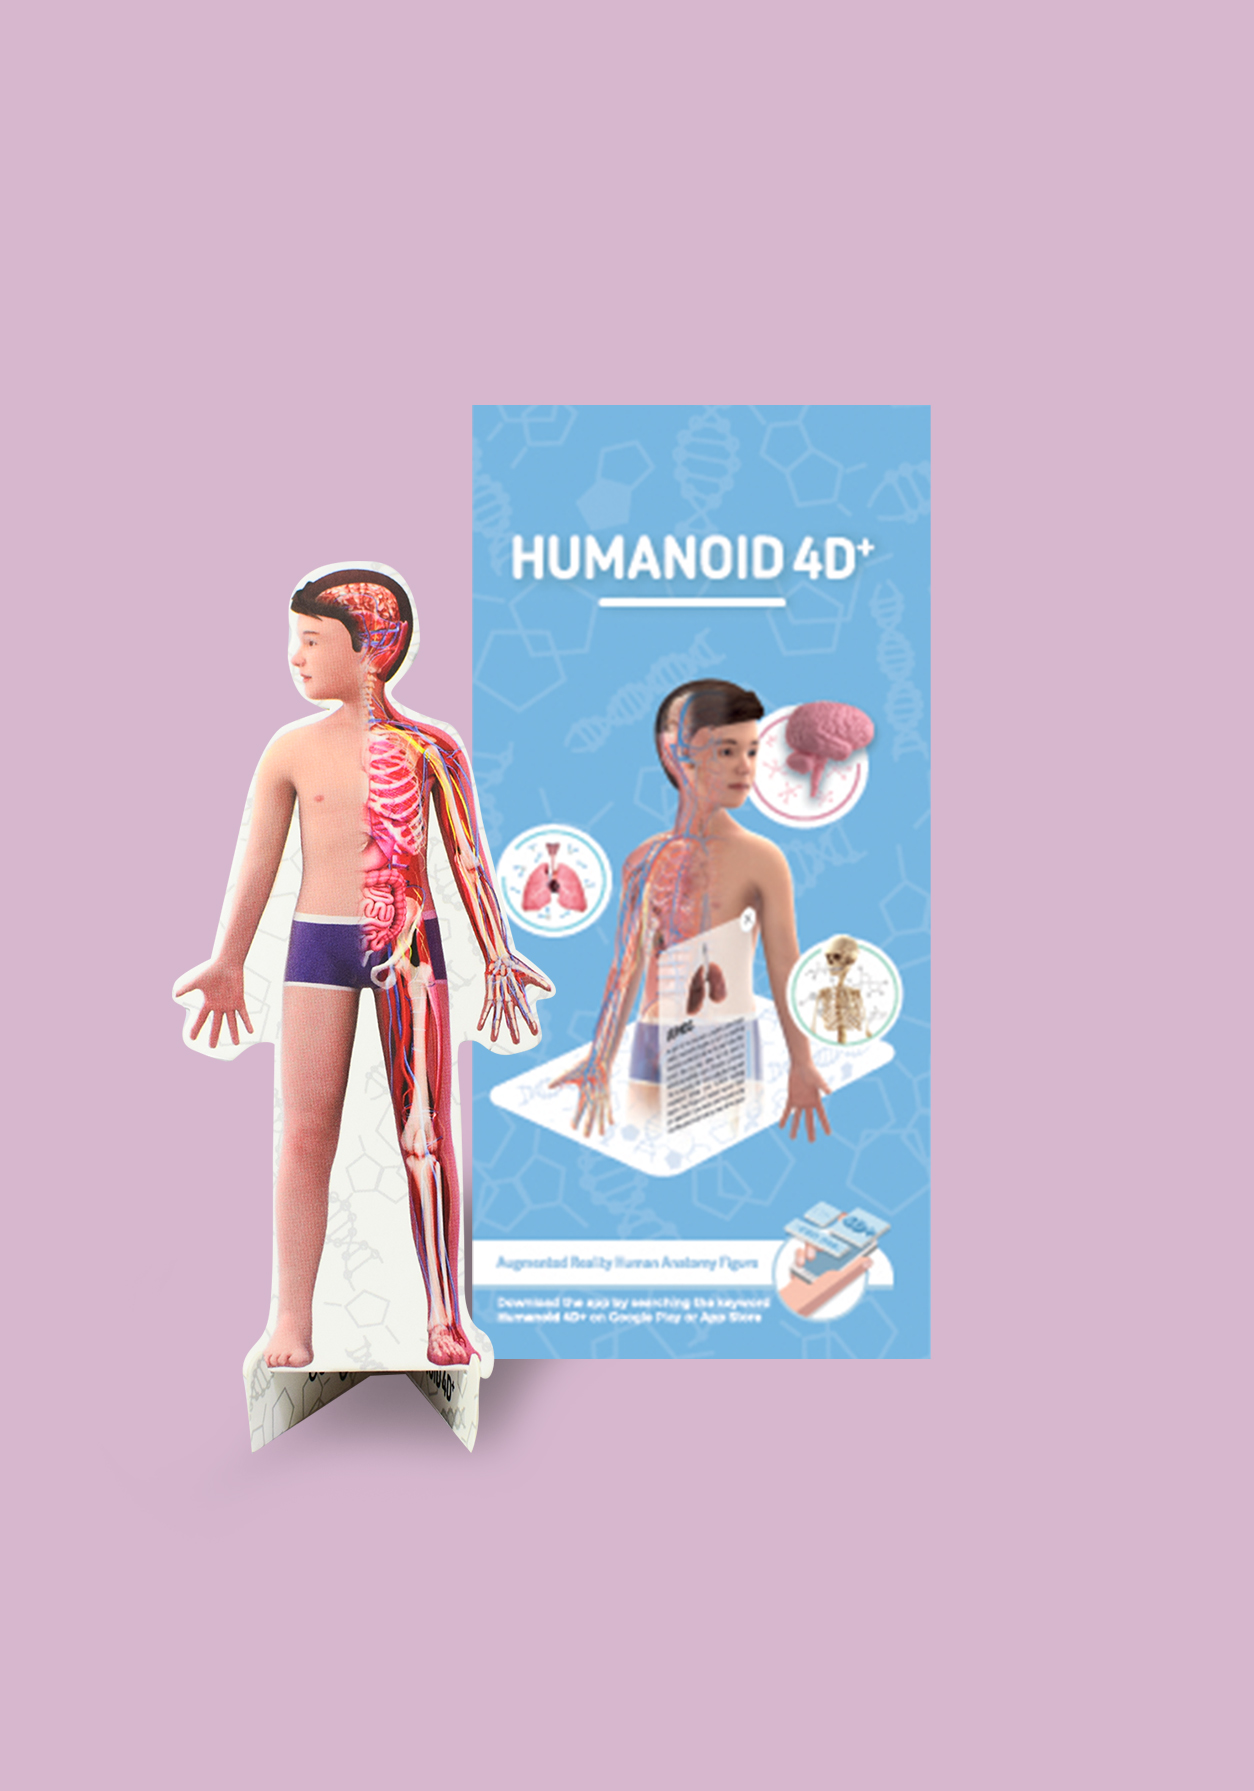 Human Body for Kids – How to Provide a Proper Introduction of Human Body for Kids | By Octagon Studio